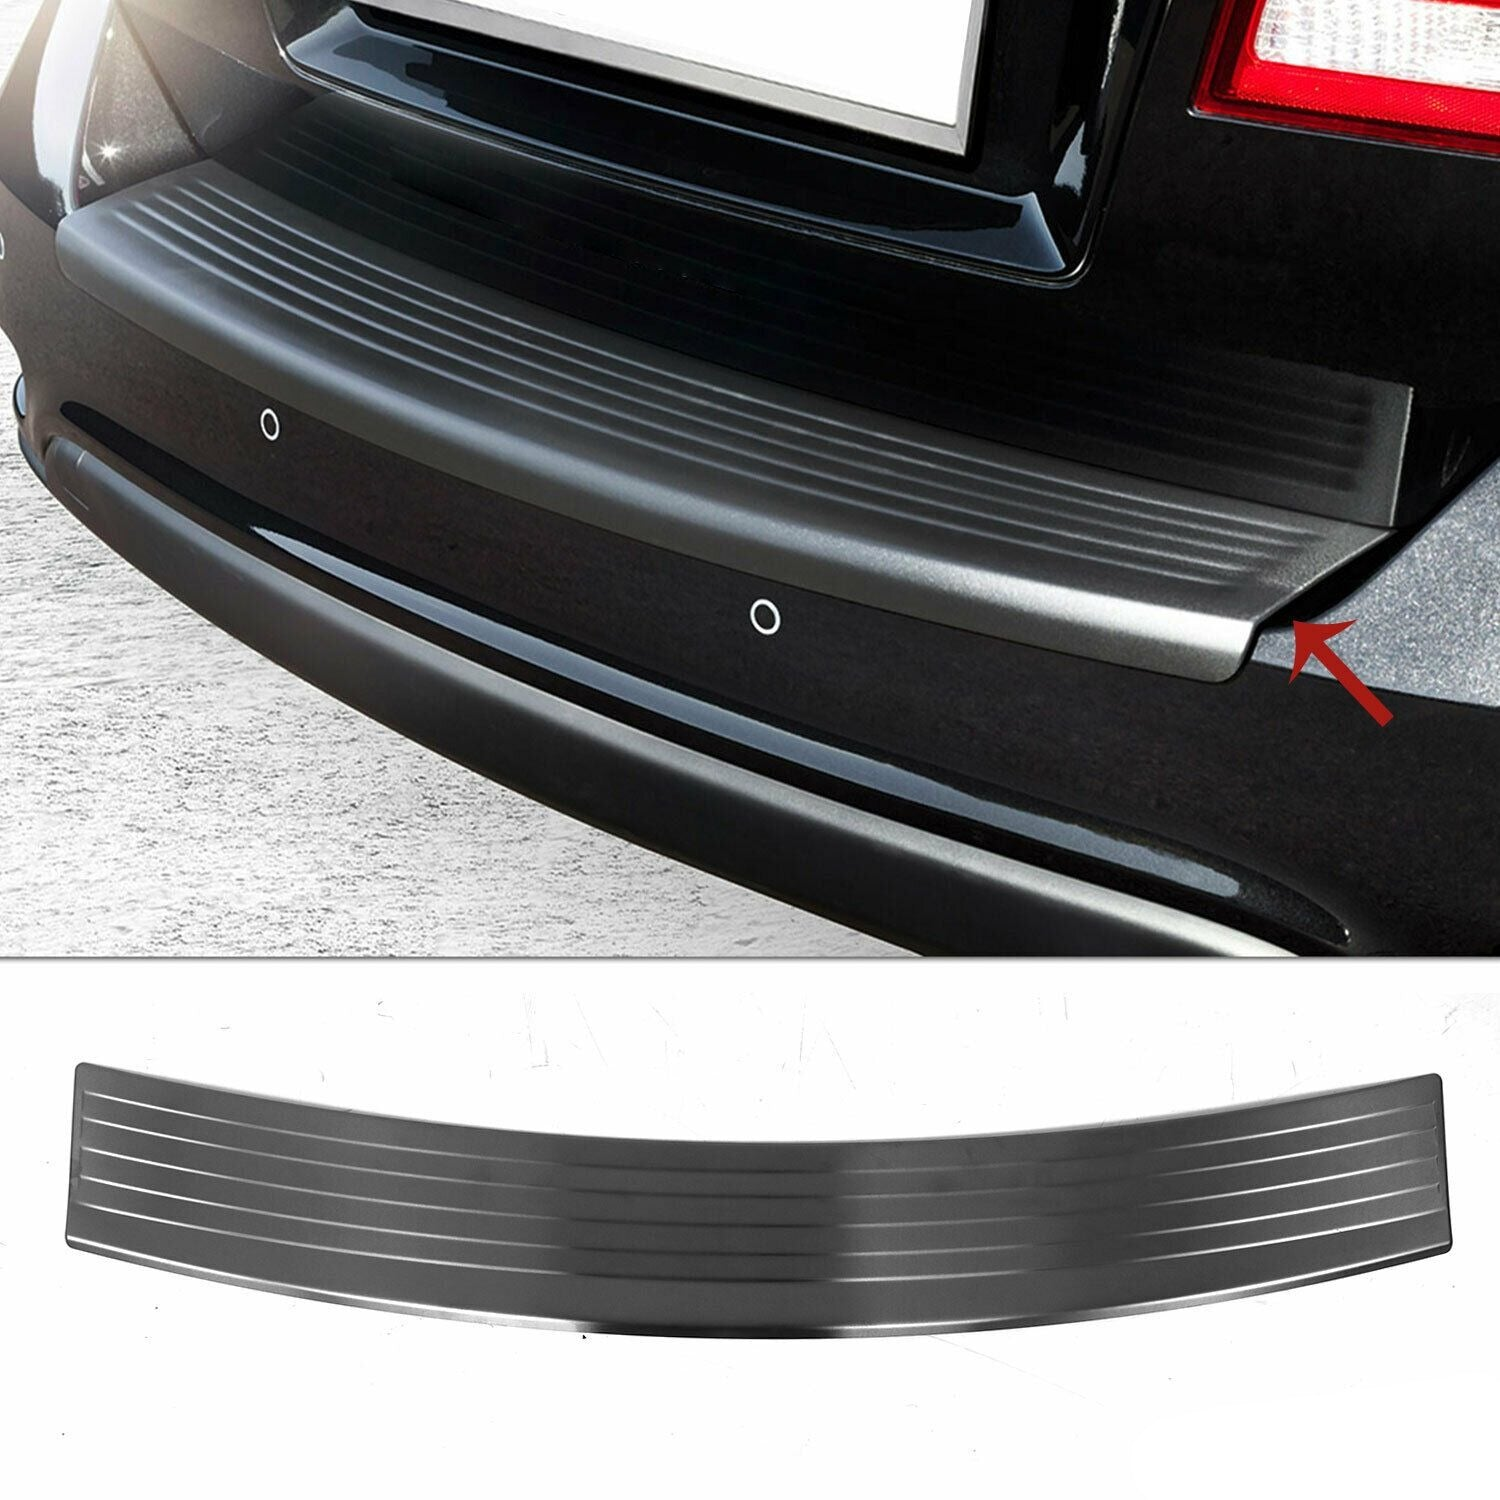 Dark Brushed Chrome Rear Bumper Trunk Sill Cover Fits Dodge Journey 2011-2021